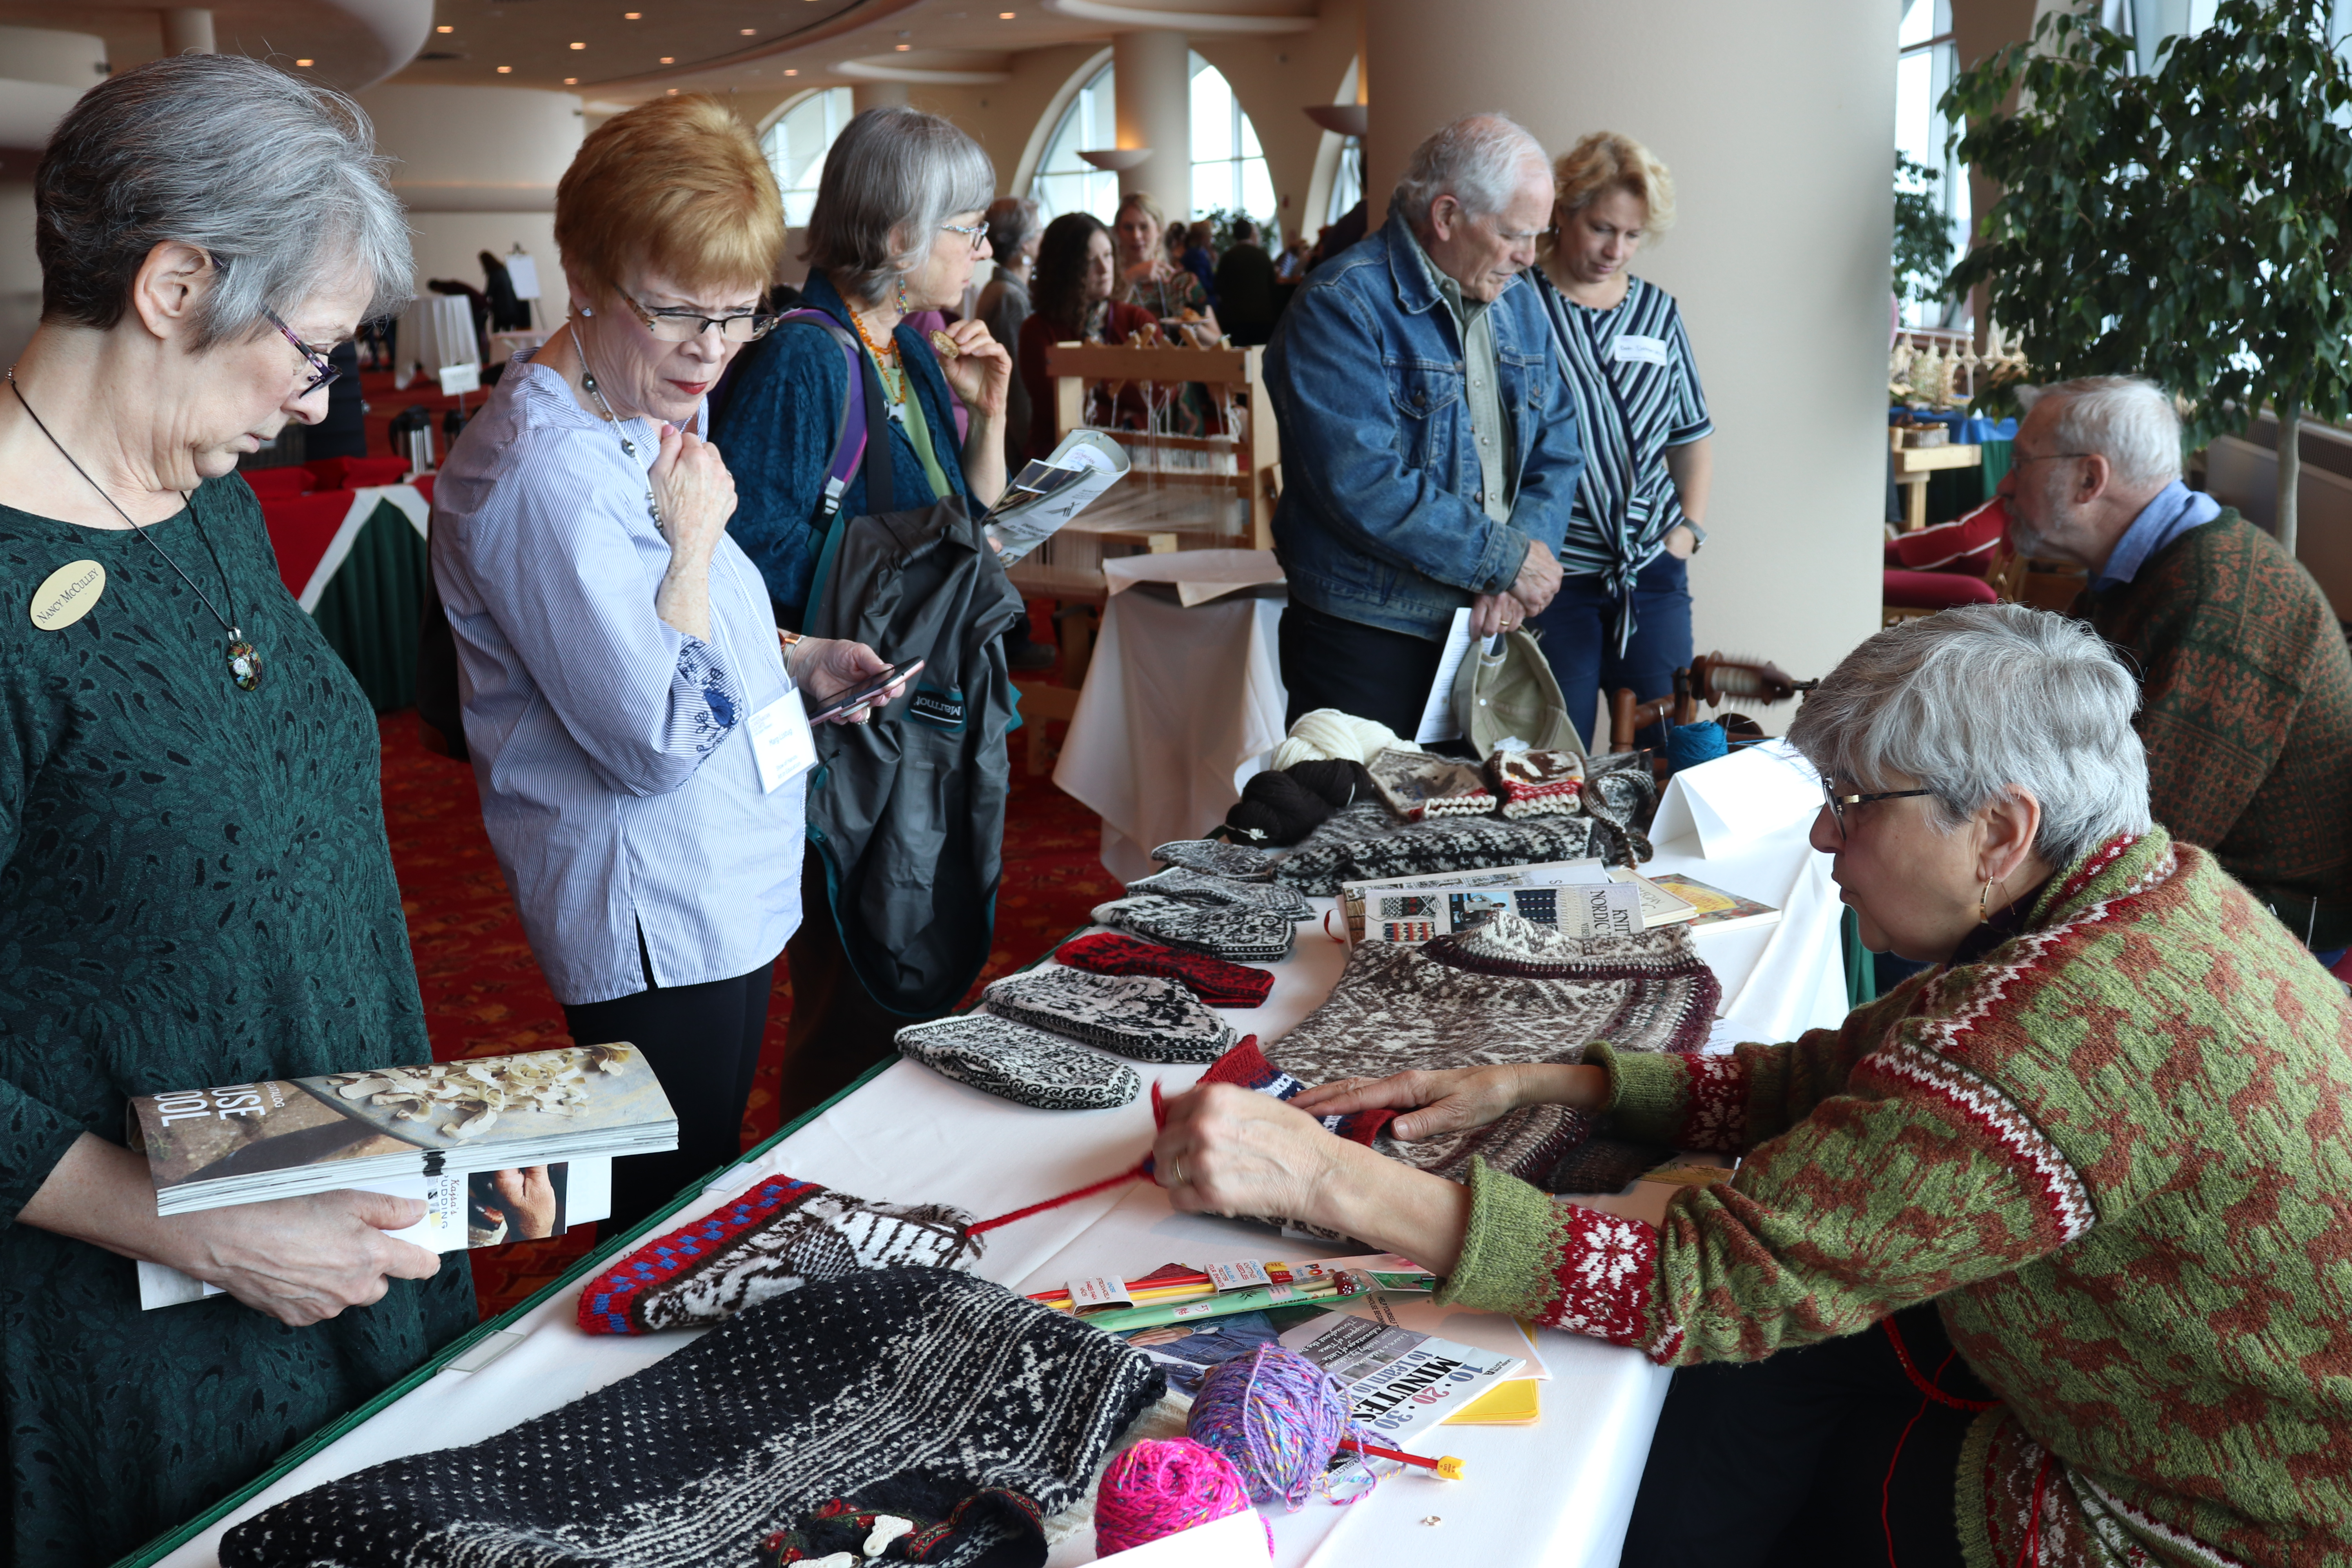 Kathryn Hartman speaks with audience members about her knitting.